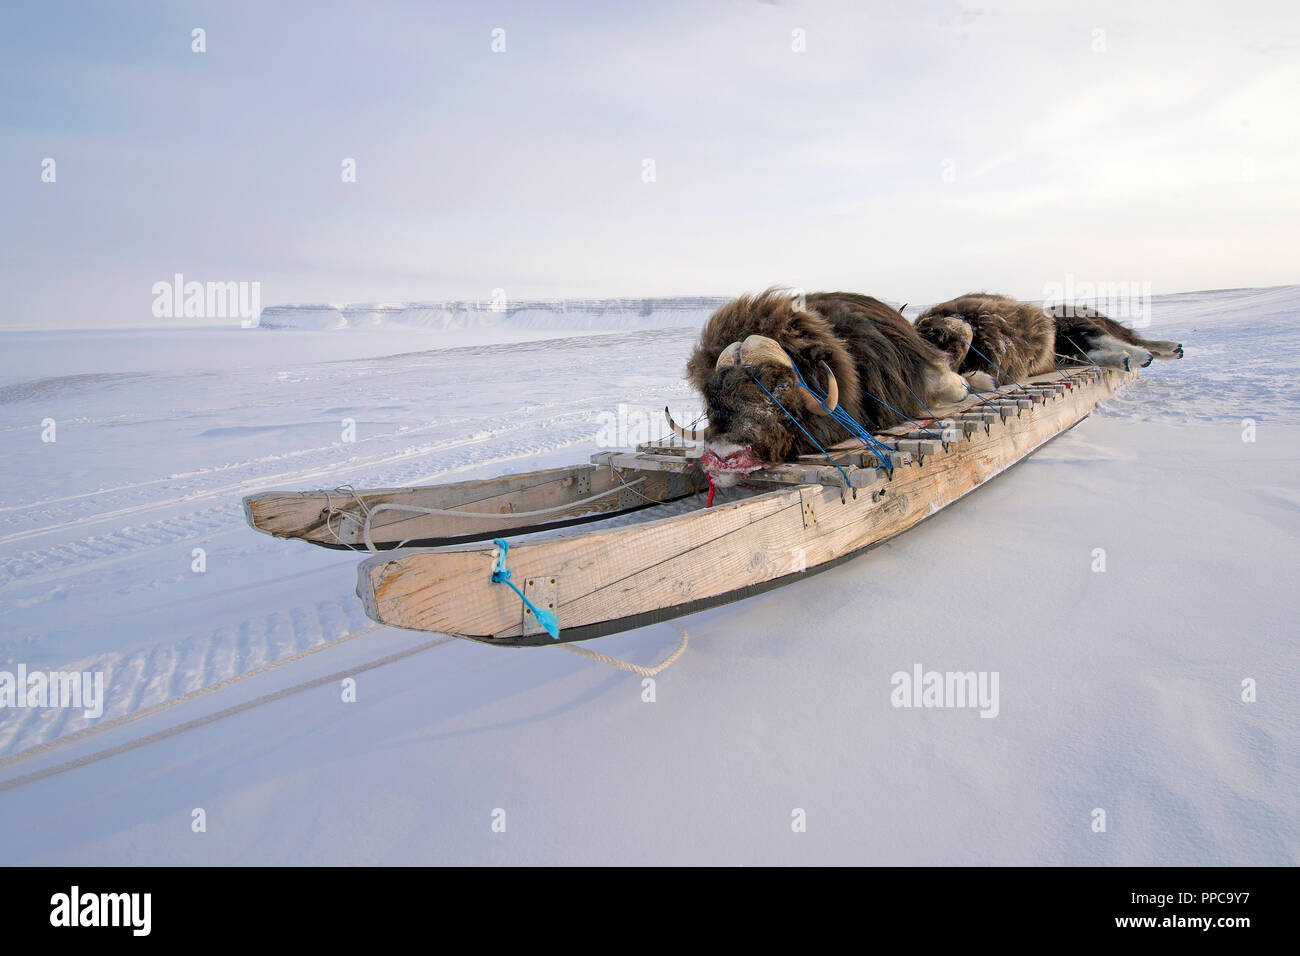 Killed Musk oxes (Ovibos moschatus) on wooden sled, Nunavut Territory, Canada - Stock Image